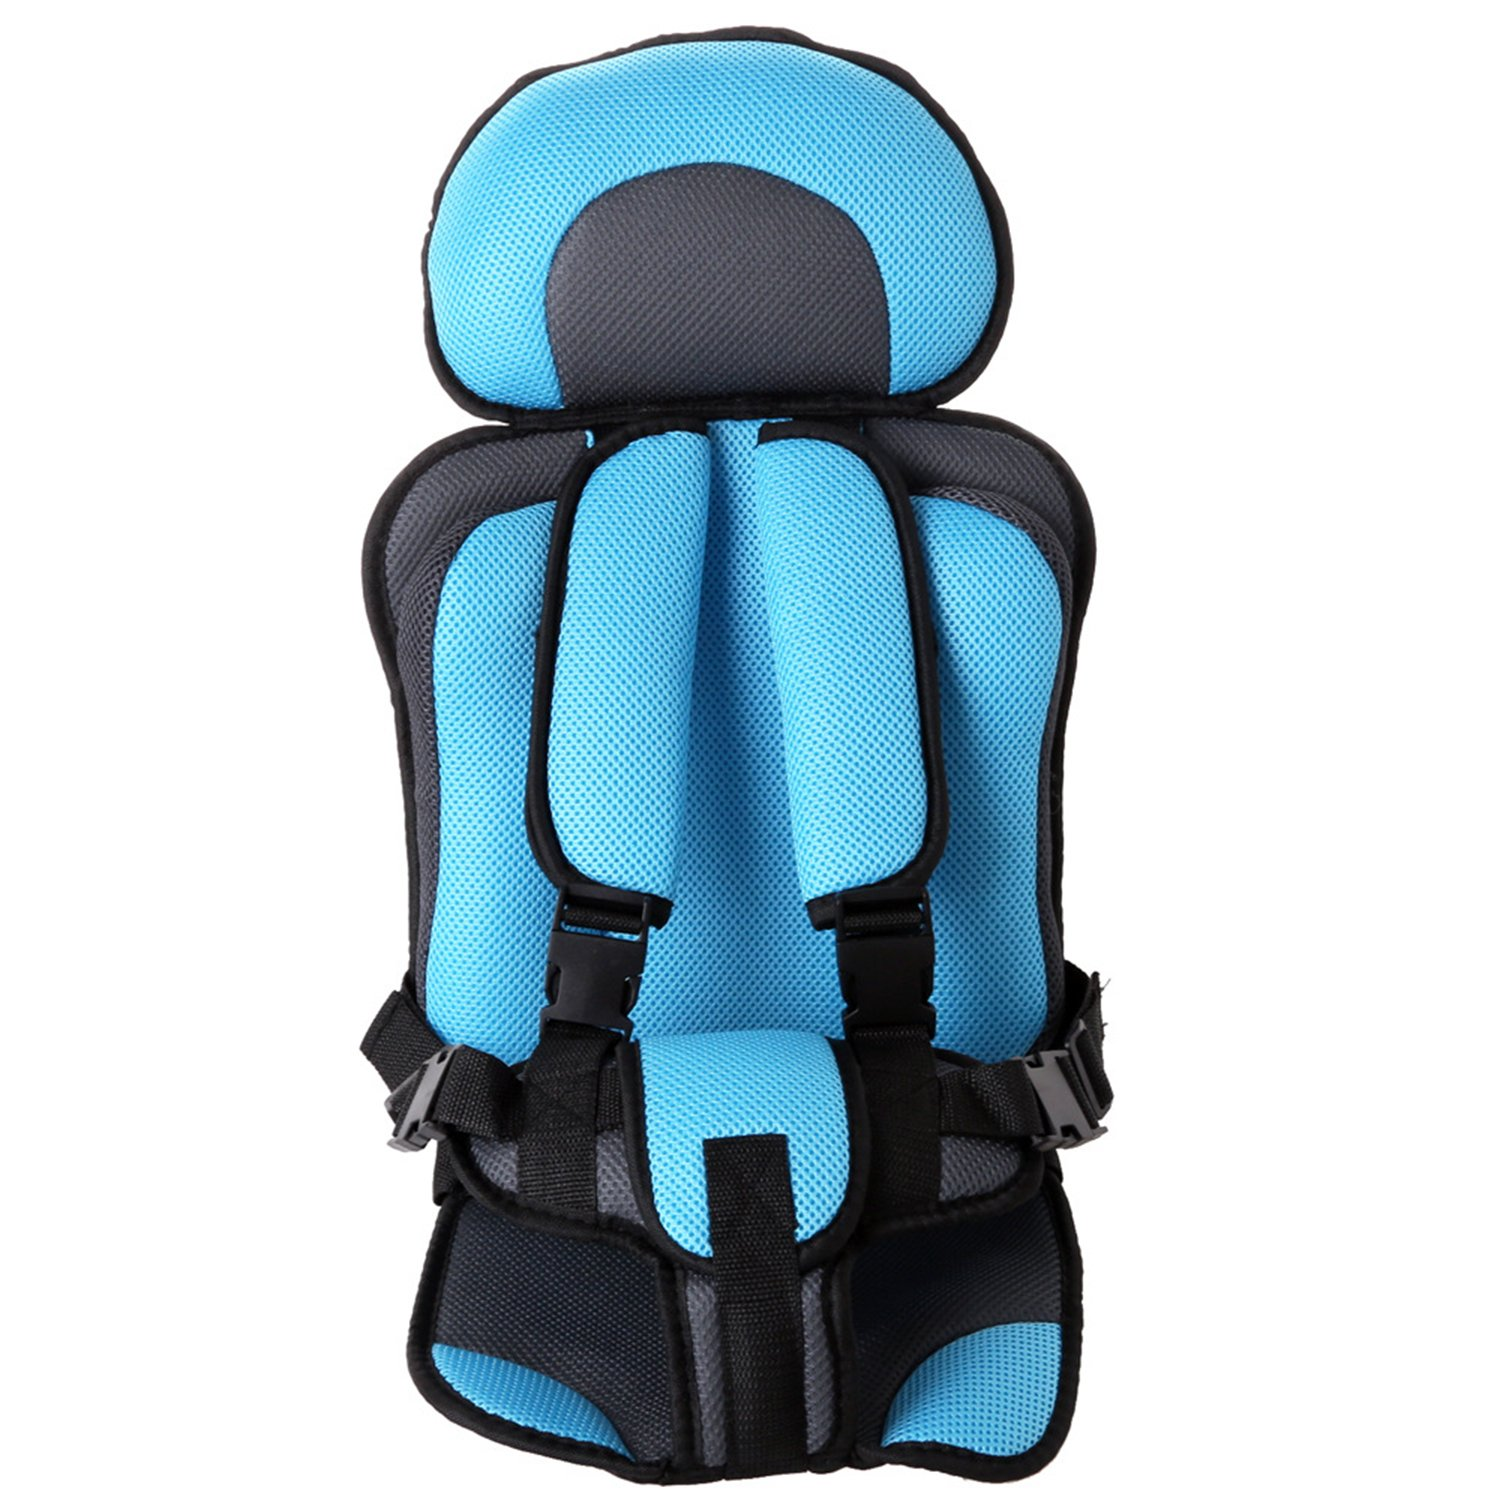 Adjustable Baby Car Seat Toddler Booster Seat/Portable Safety Child Car Cushion Seat/Multi Function Chair For Children 0-6 Years (Red) WIFORNT